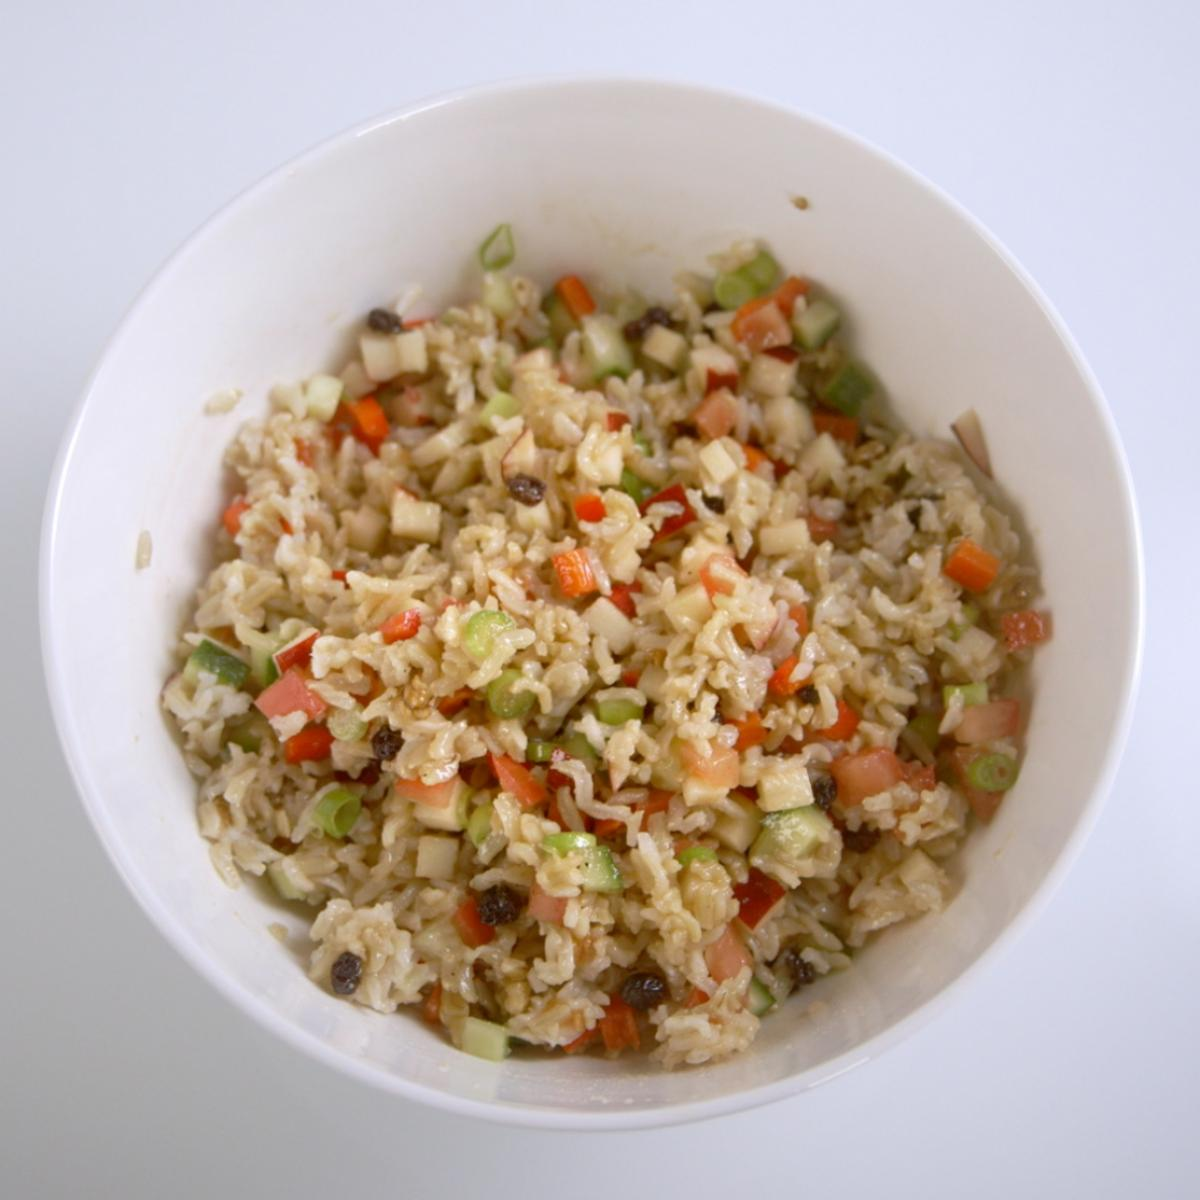 A picture of Delia's Brown Rice Salad recipe